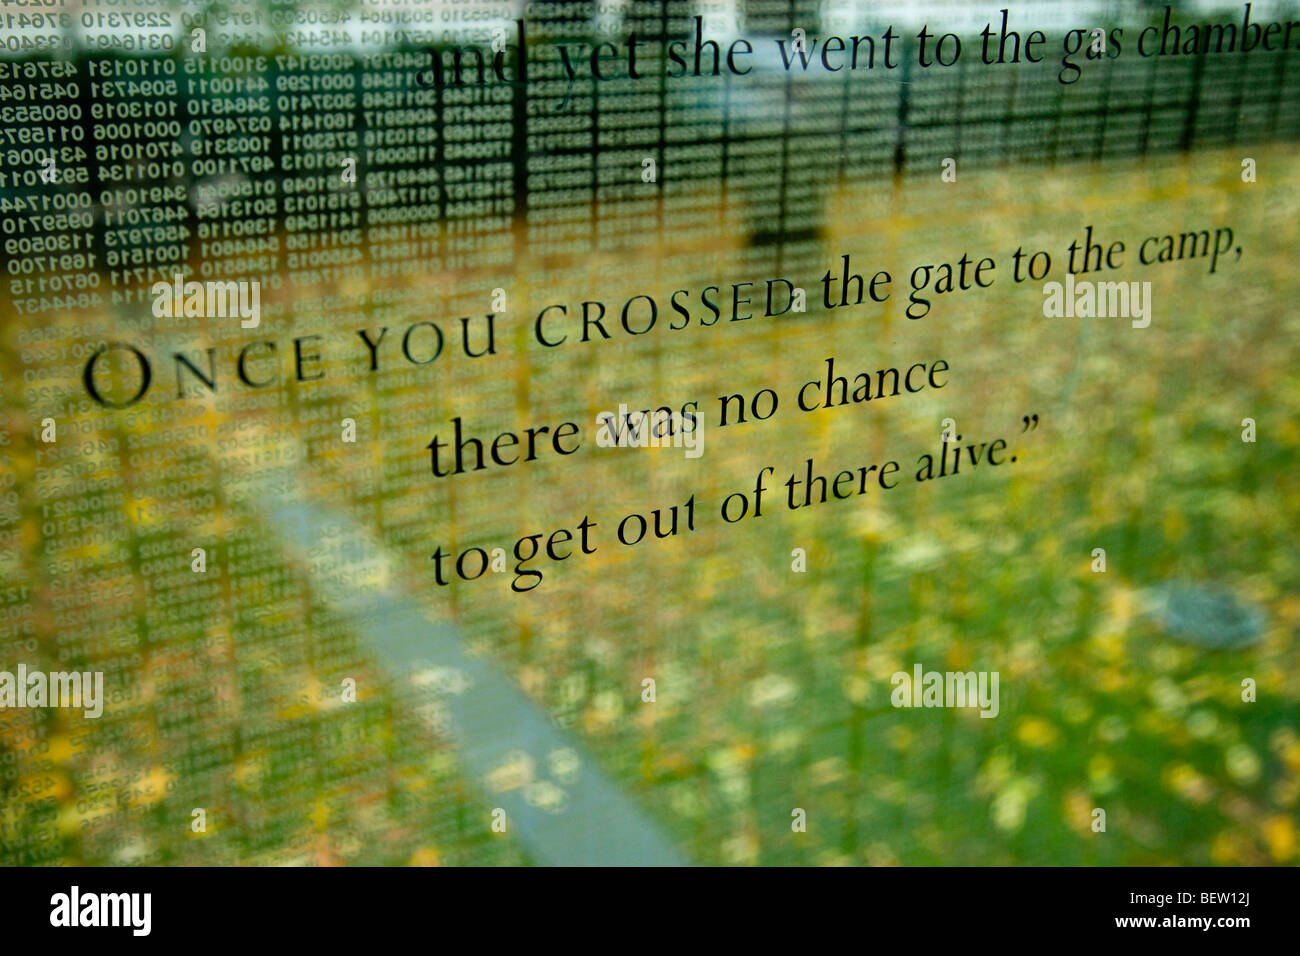 Poignant quotes on the glass walls of the Holocaust Memorial, Boston Massachusetts USA - Stock Image